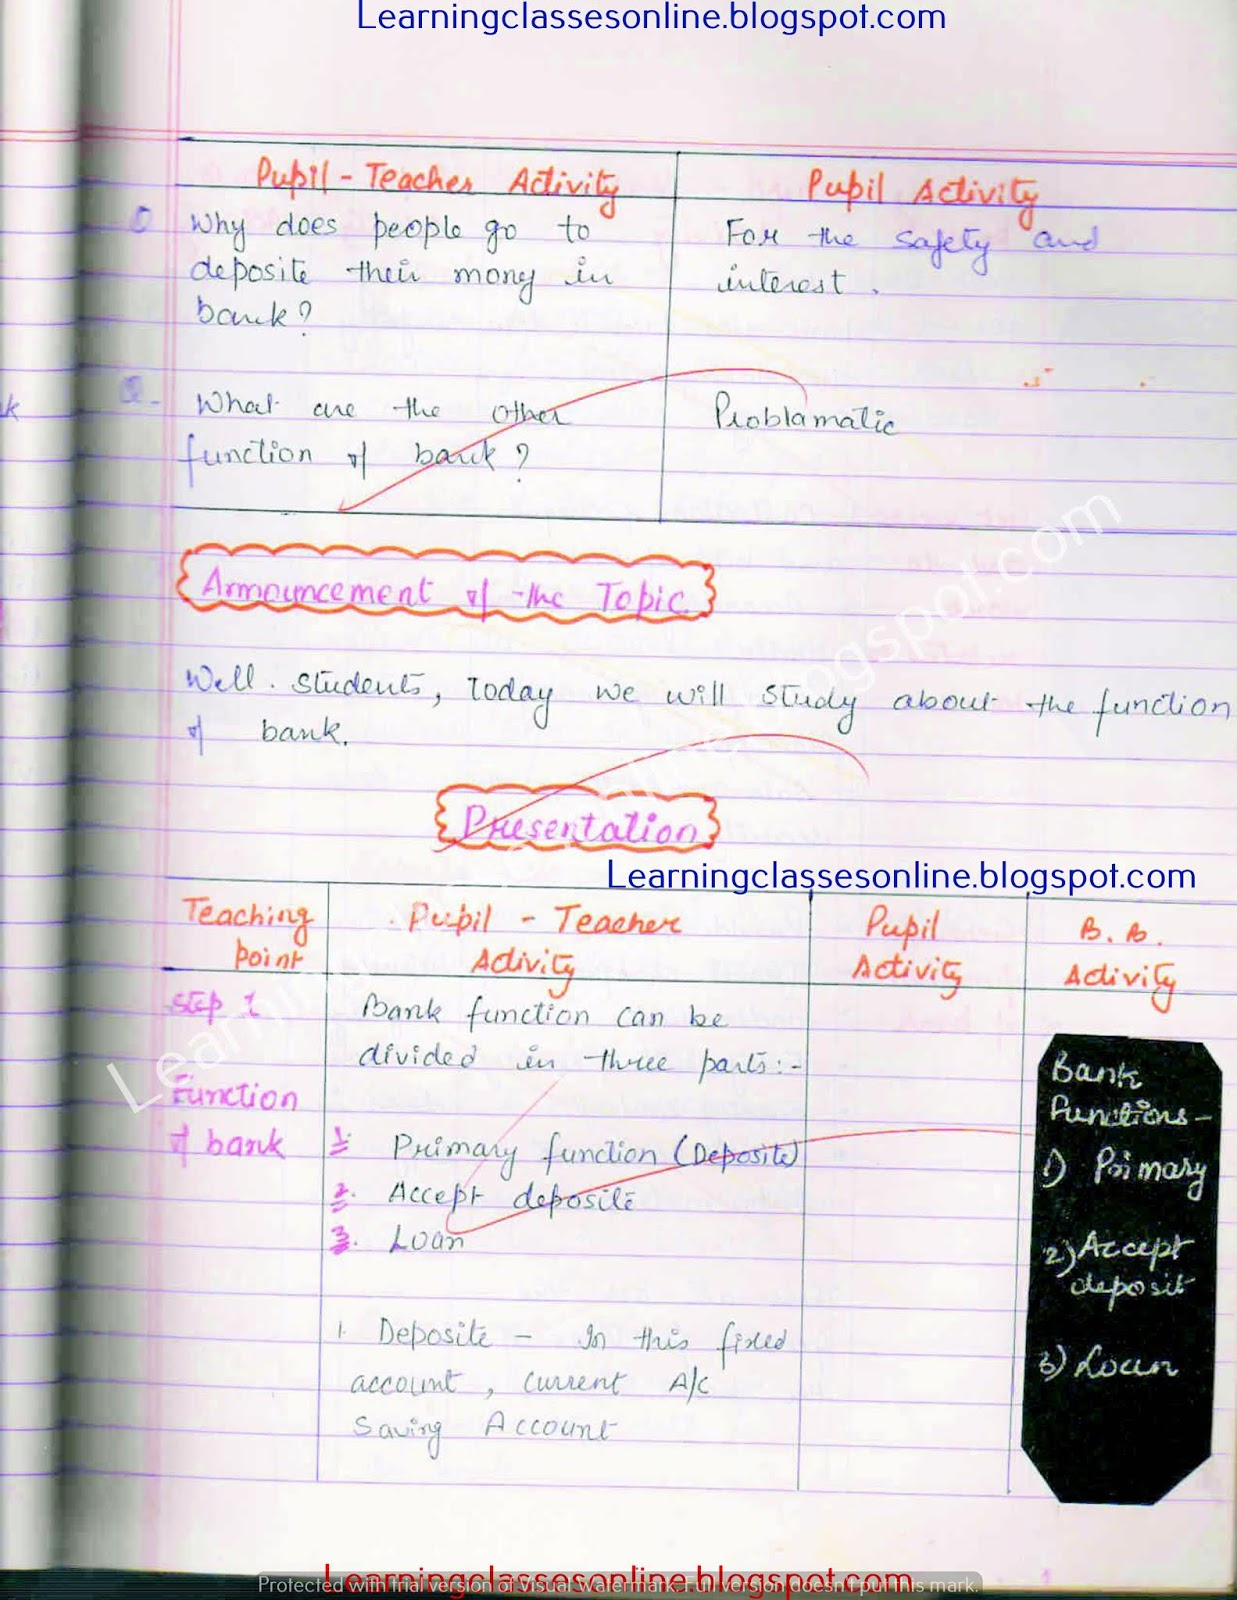 B.Ed economics lesson plan file free download